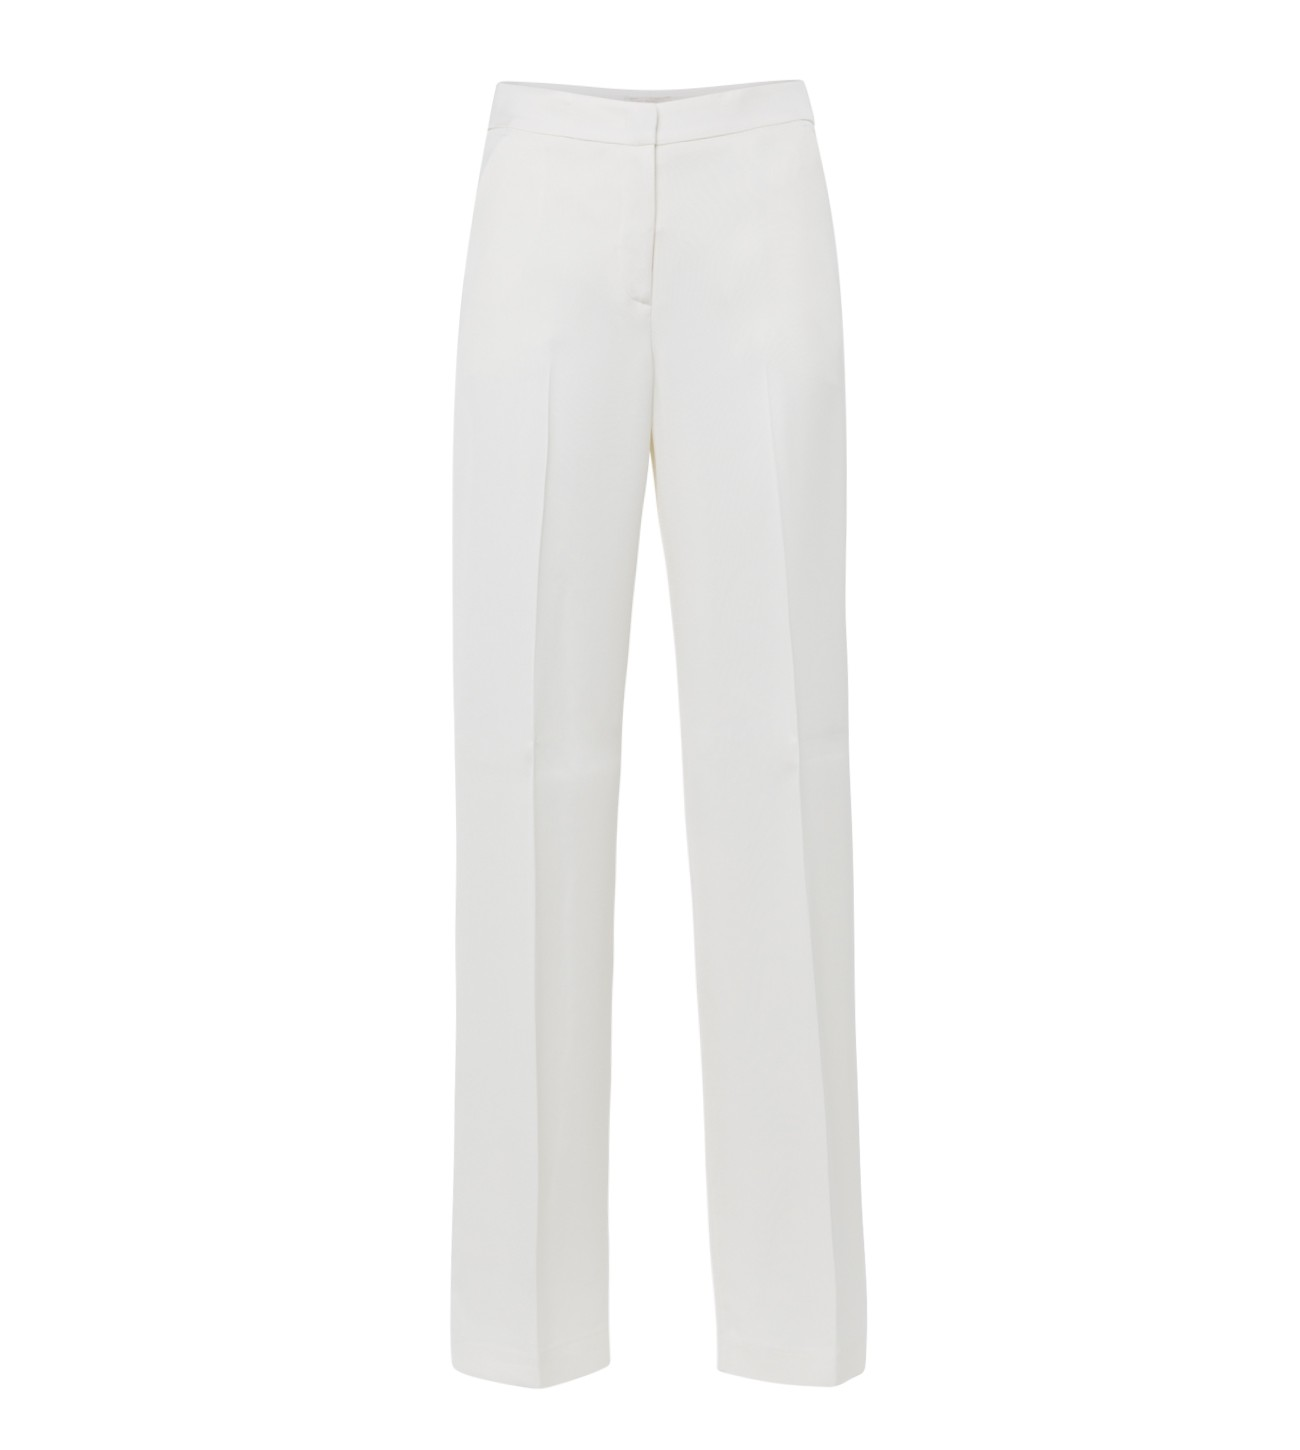 SEVENTY_STRAIGHT_FIT_TWILL_TROUSERS_MARIONA_FASHION_CLOTHING_WOMAN_SHOP_ONLINE_PT0703